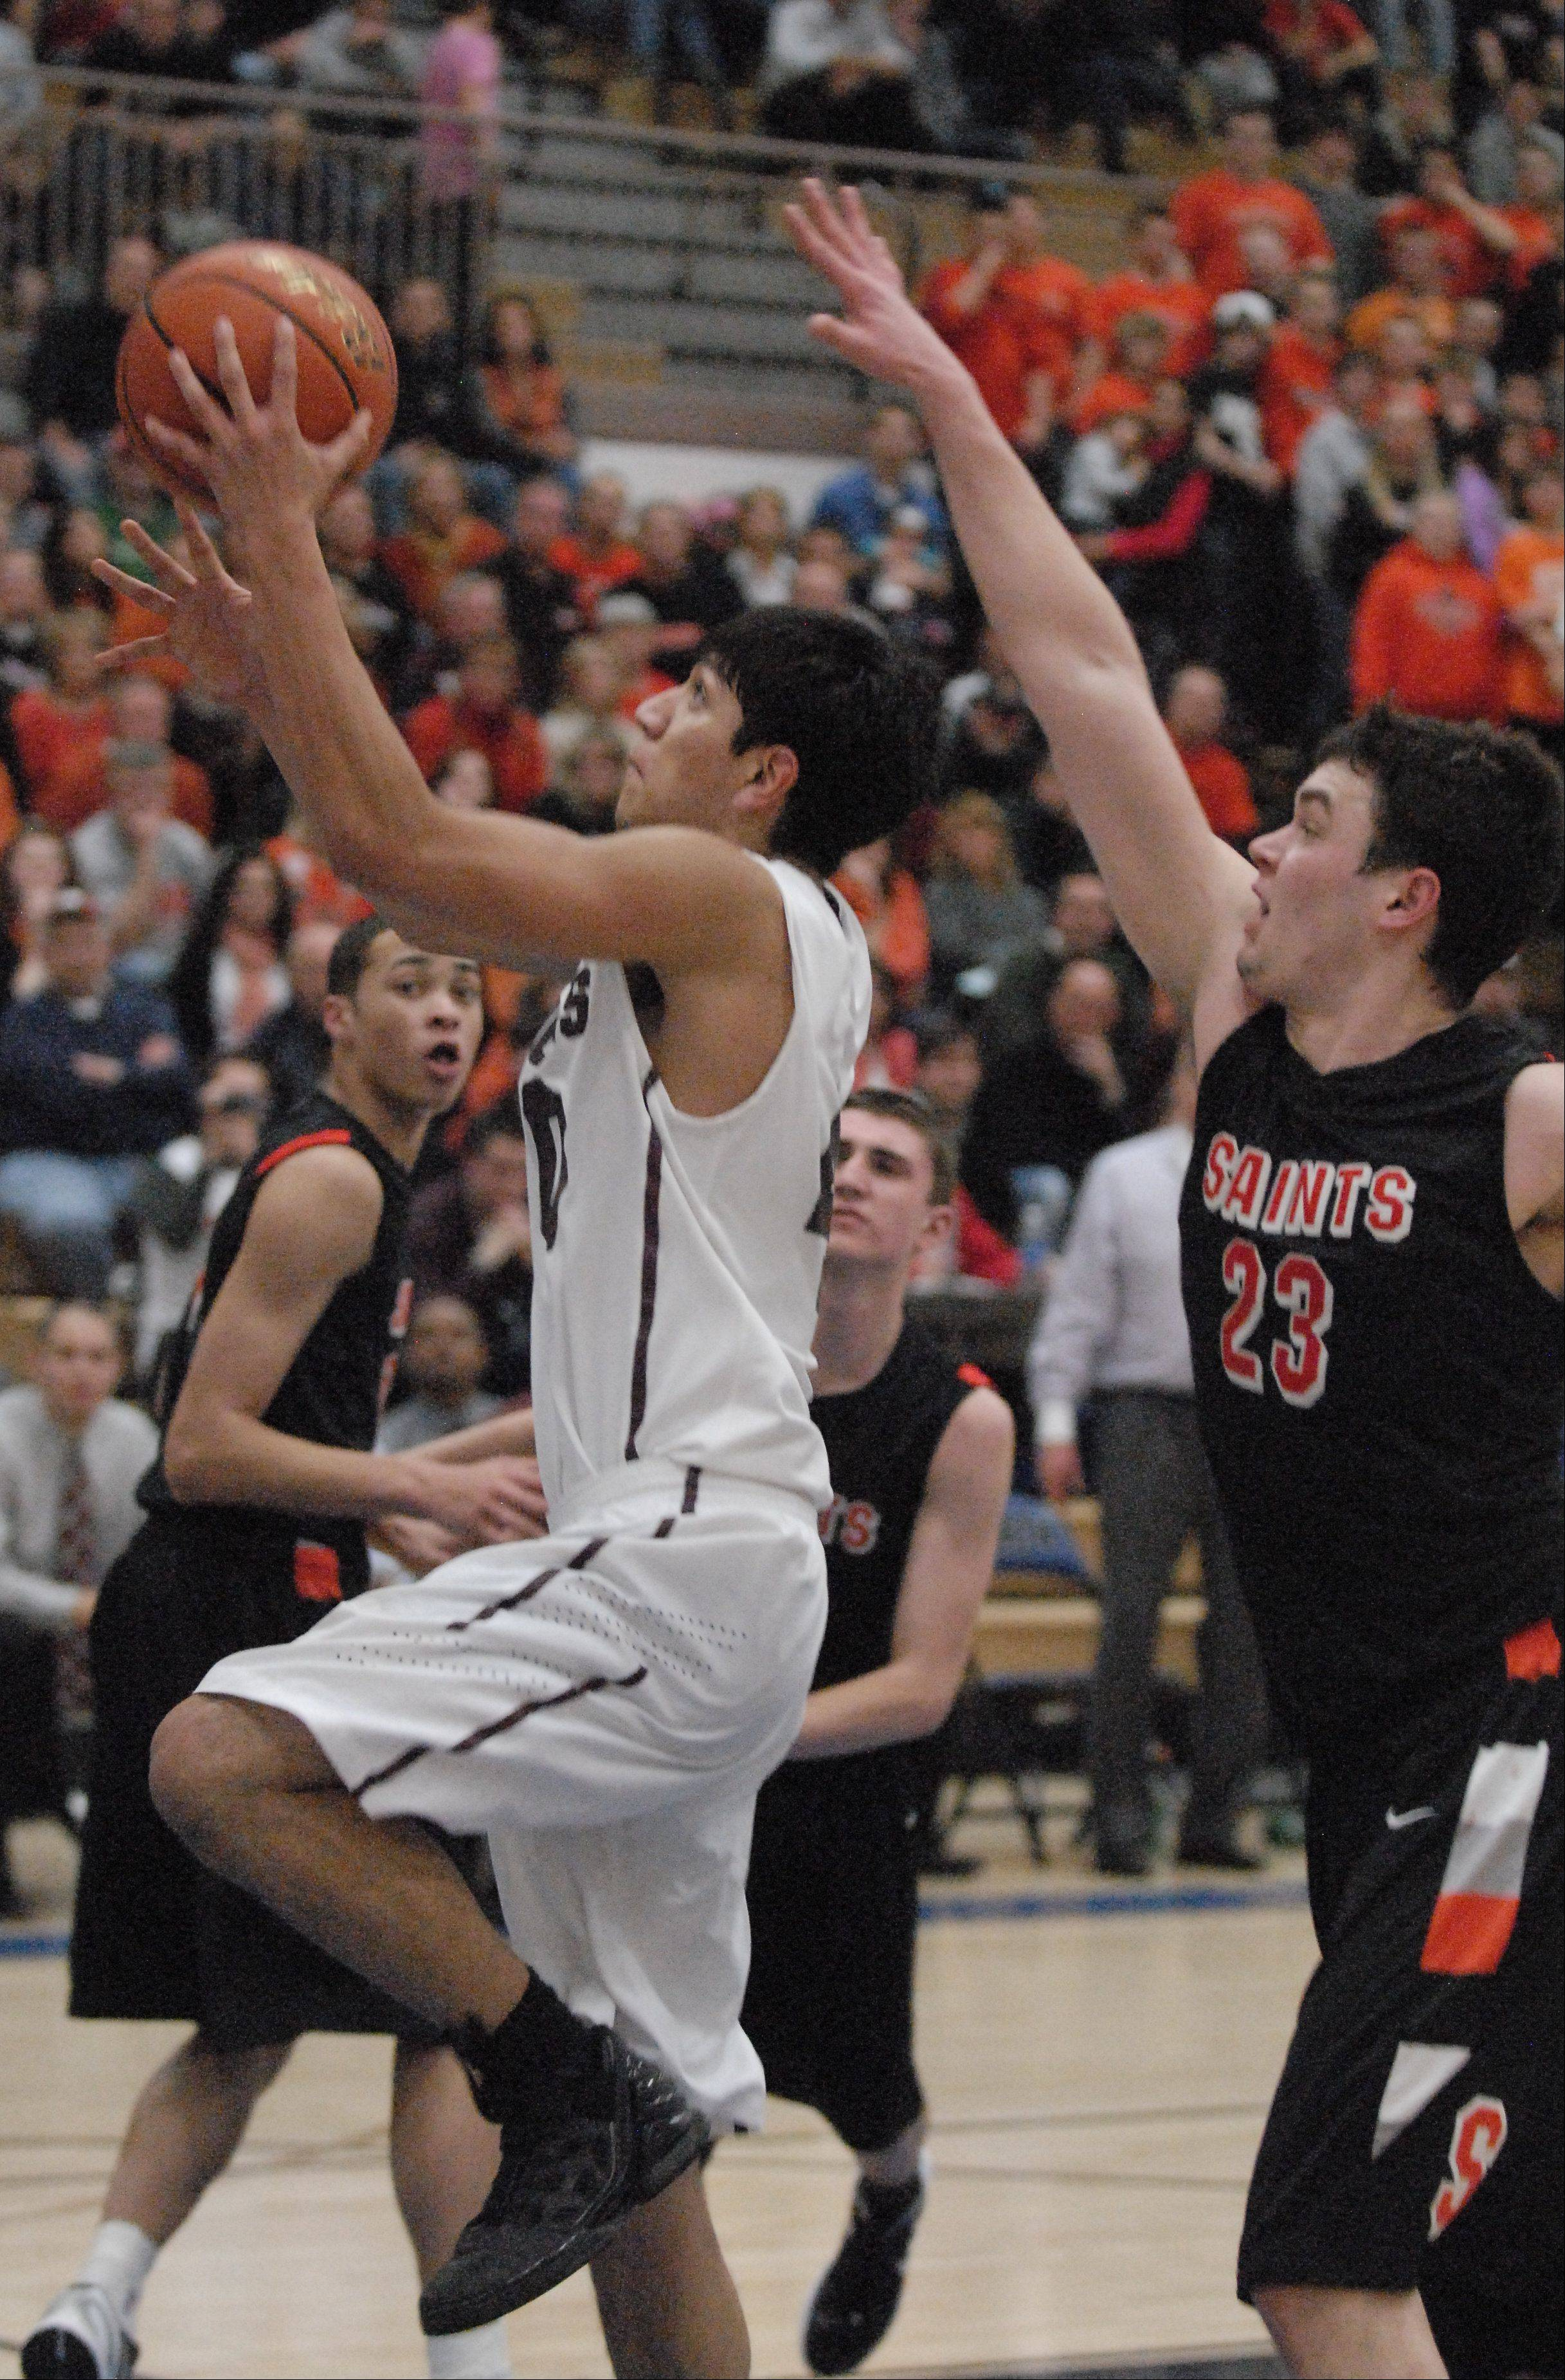 Images from Elgin vs. St. Charles East in championship game of Class 4A St. Charles North regional.